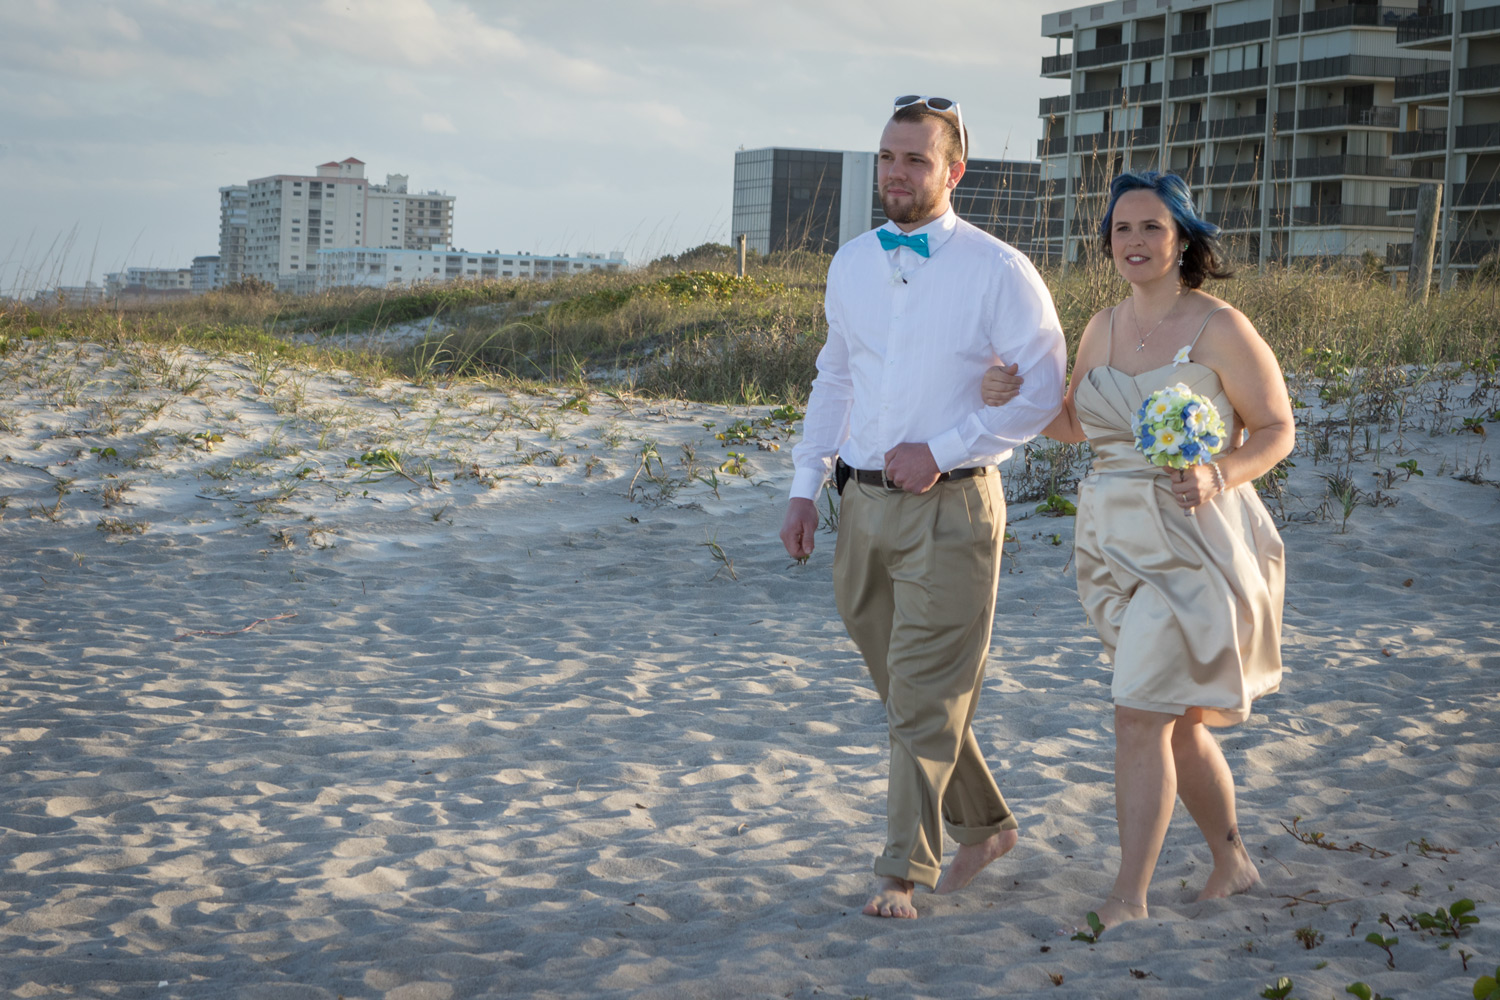 beach_wedding-1743-1.jpg